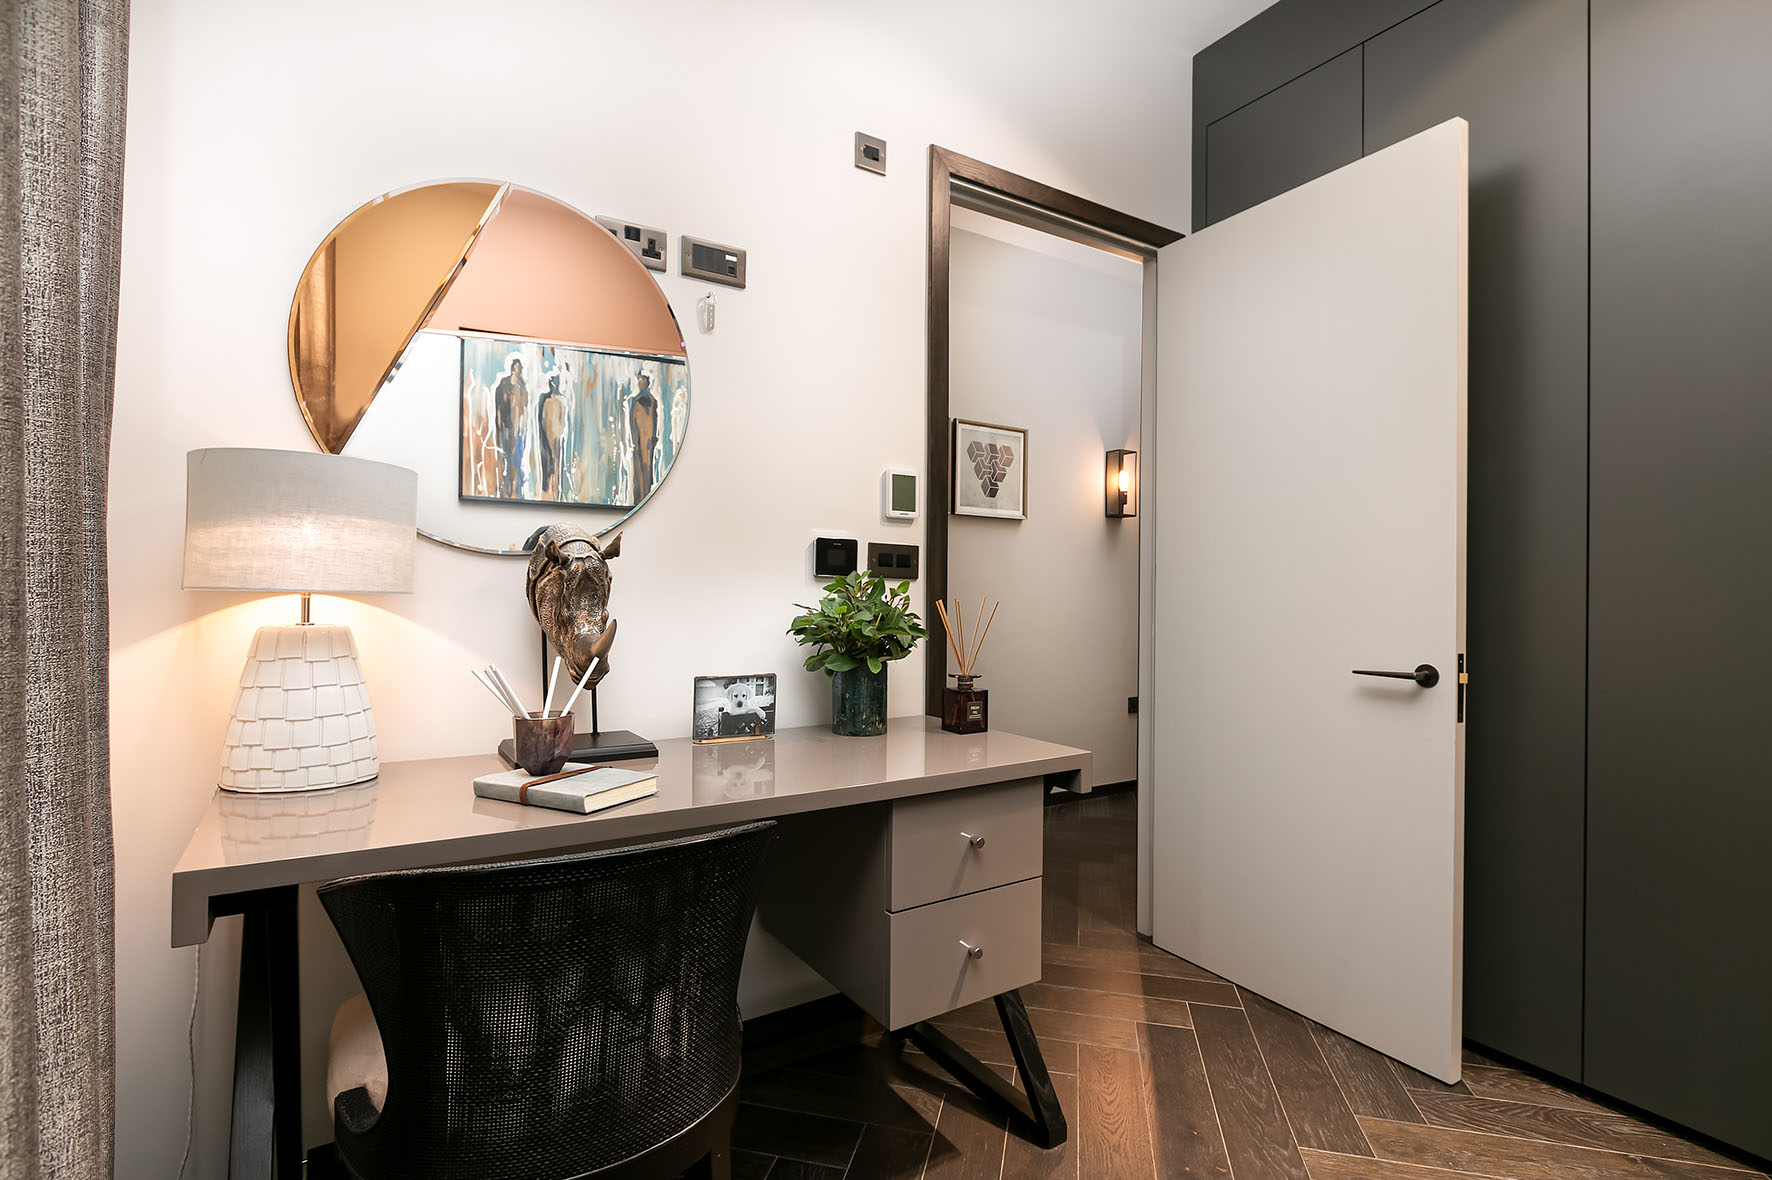 Lovelydays luxury service apartment rental - London - Soho - Berwick Street I - Lovelysuite - 3 bedrooms - 3 bathrooms - Working desk - a7e3234327cc - Lovelydays